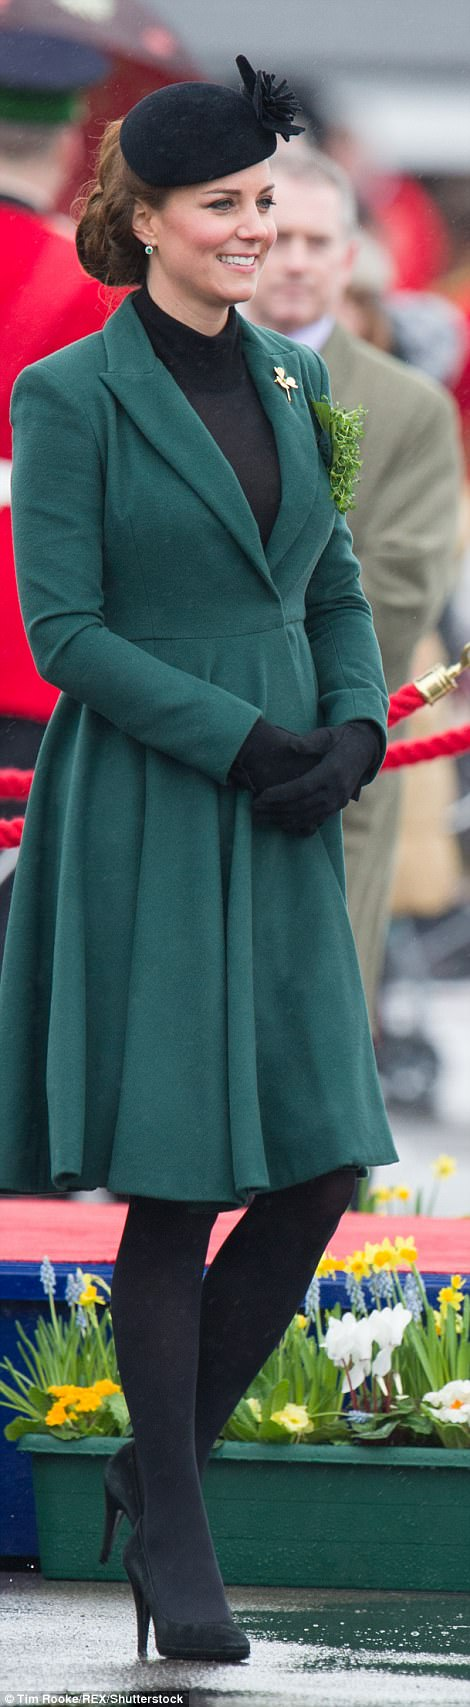 March: An Emilia Wickstead coat for St Patrick's Day